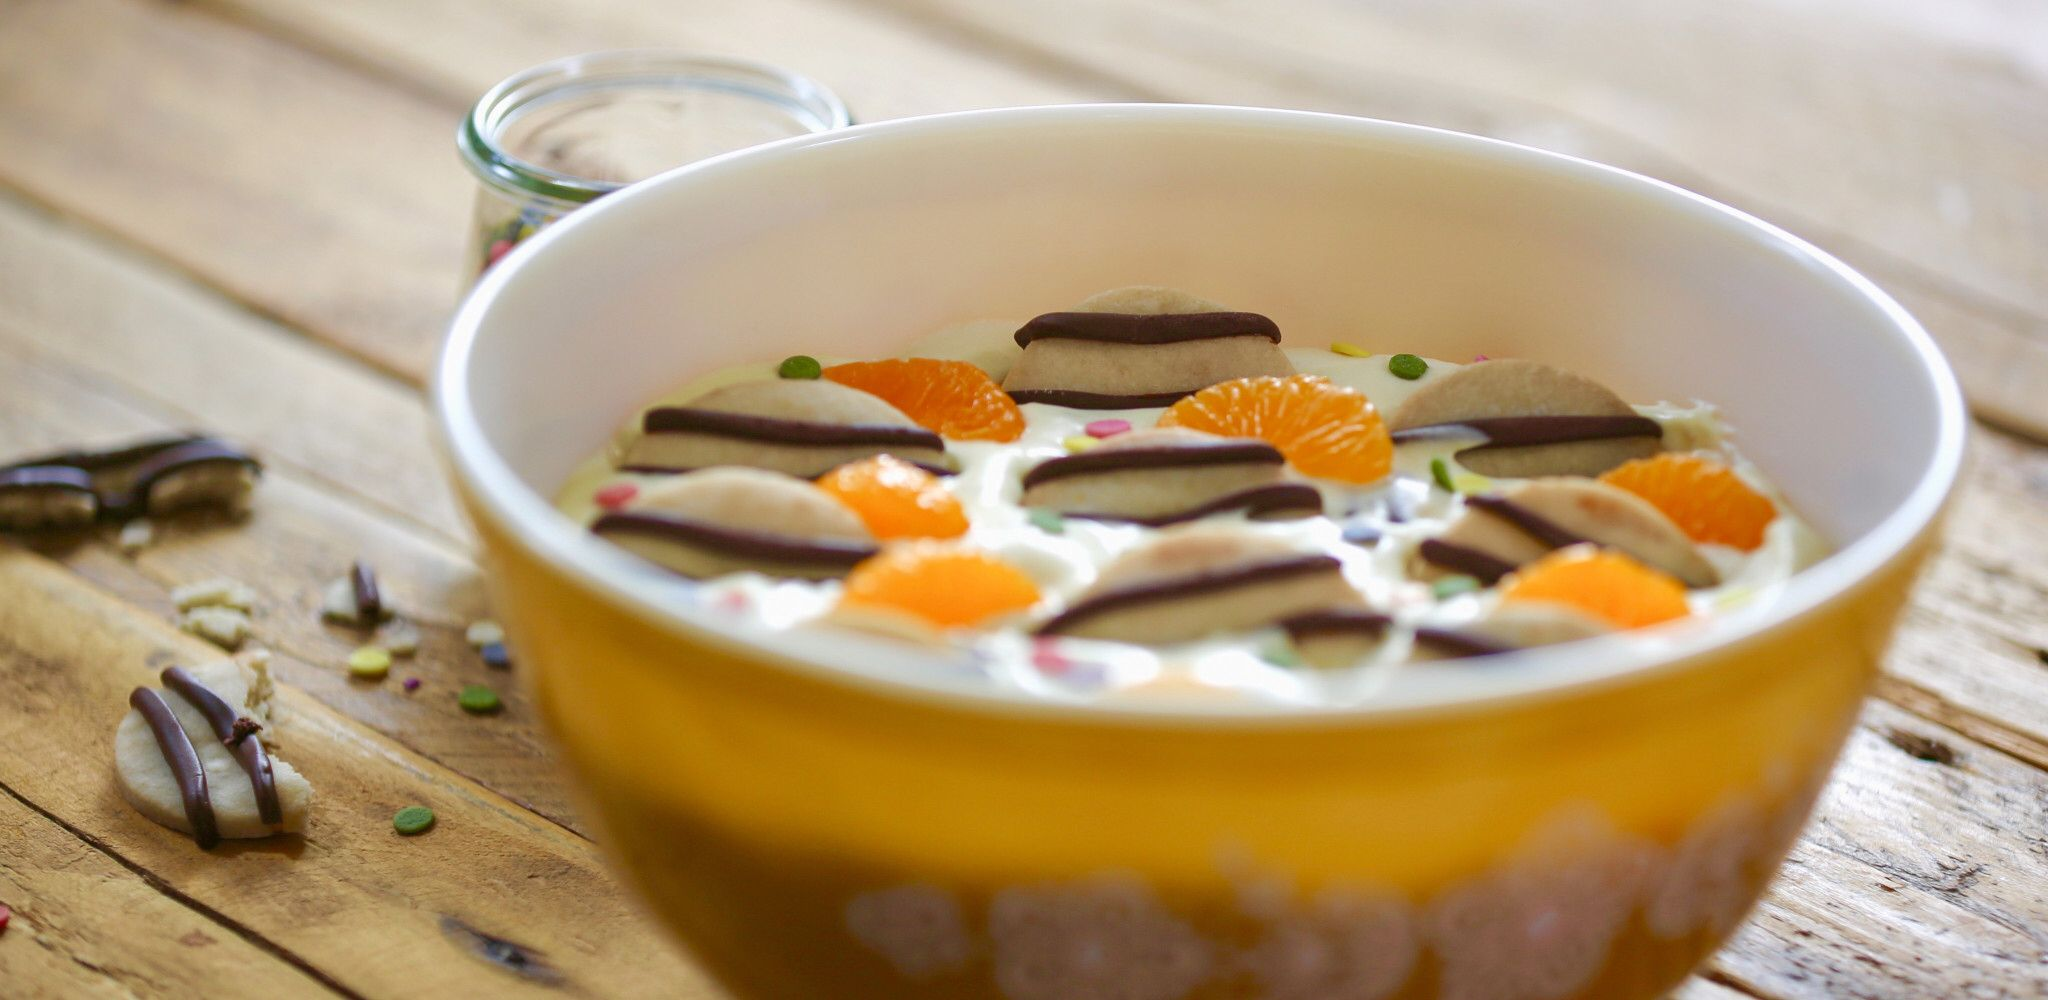 Sweet Cookie Salad with Homemade Cookies and Mandarins #cookiesalad